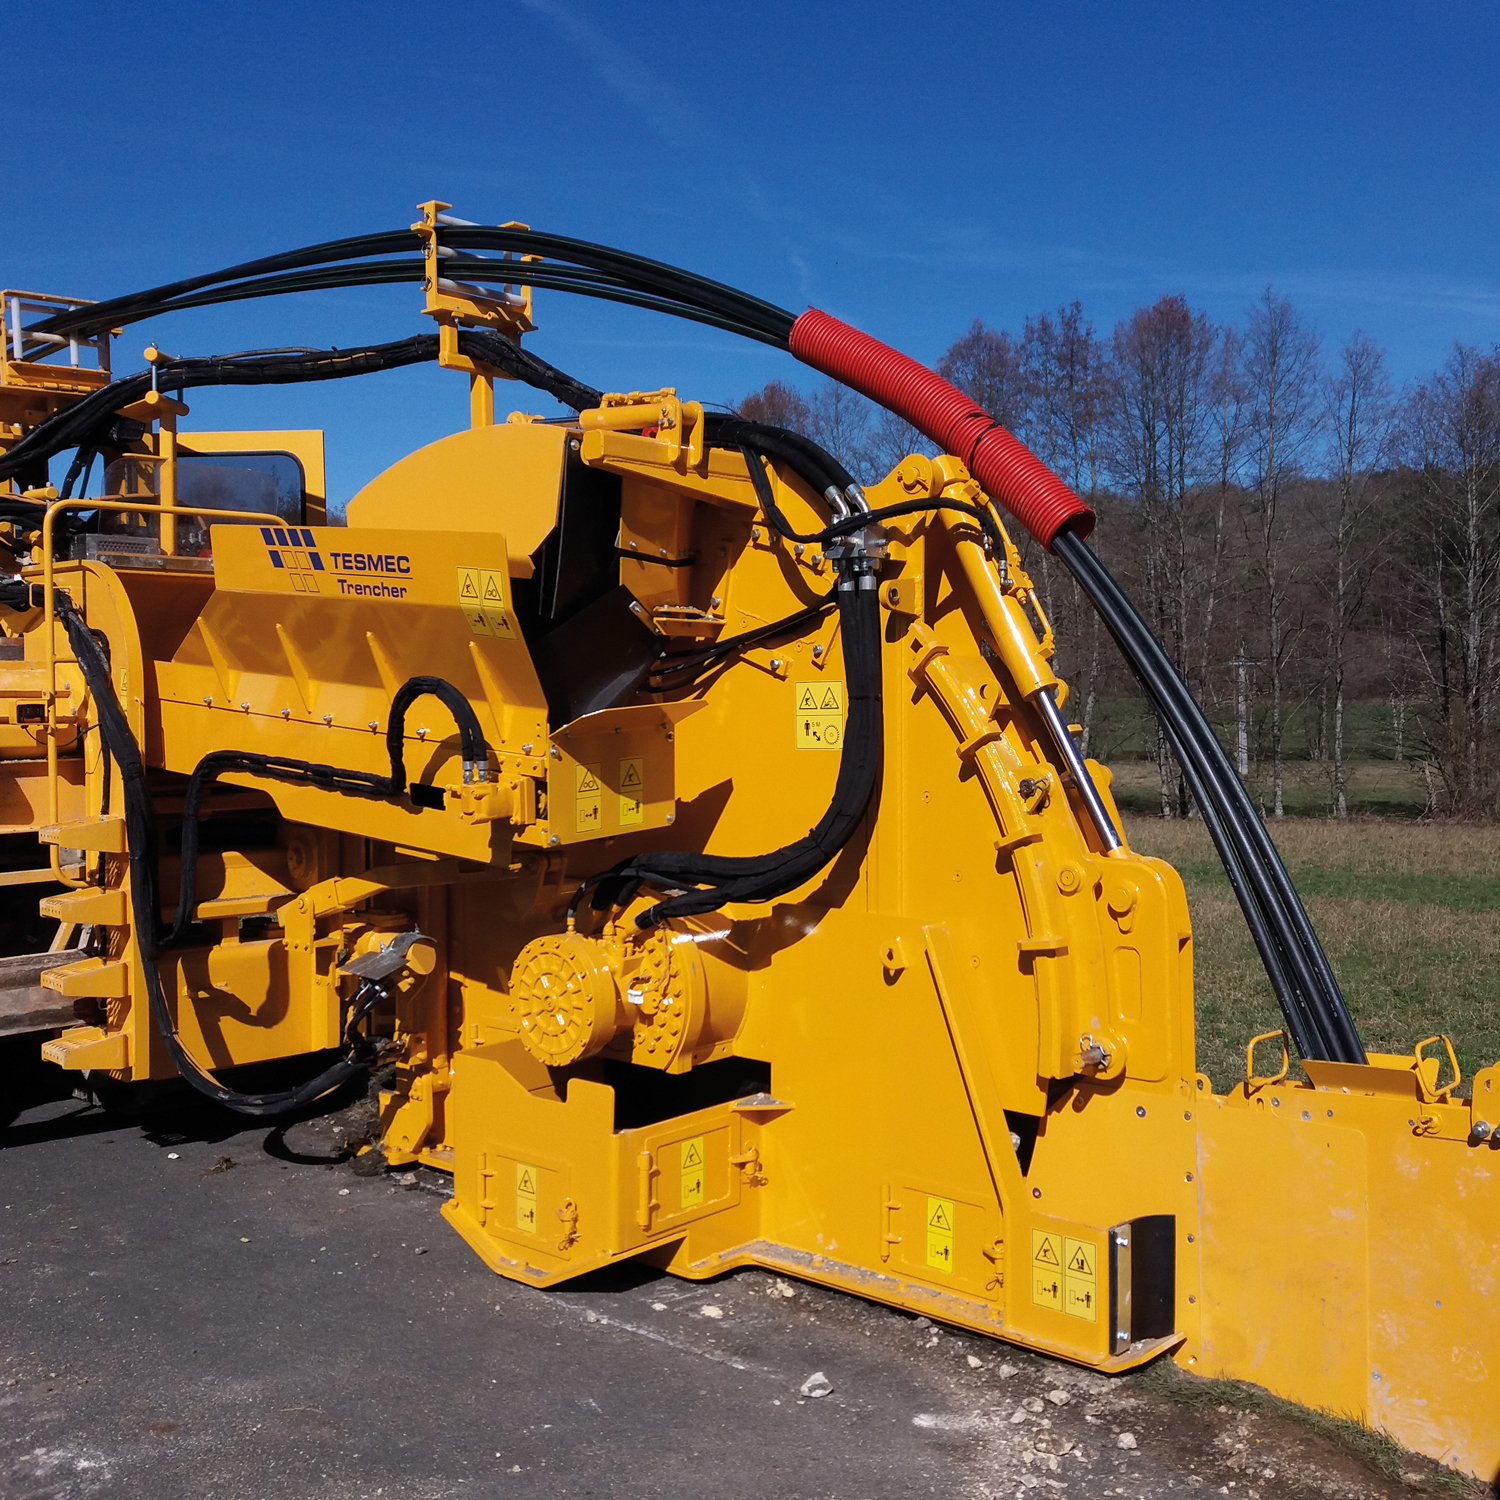 Compact Trencher for Urban jobsites Tesmec 950R T1000